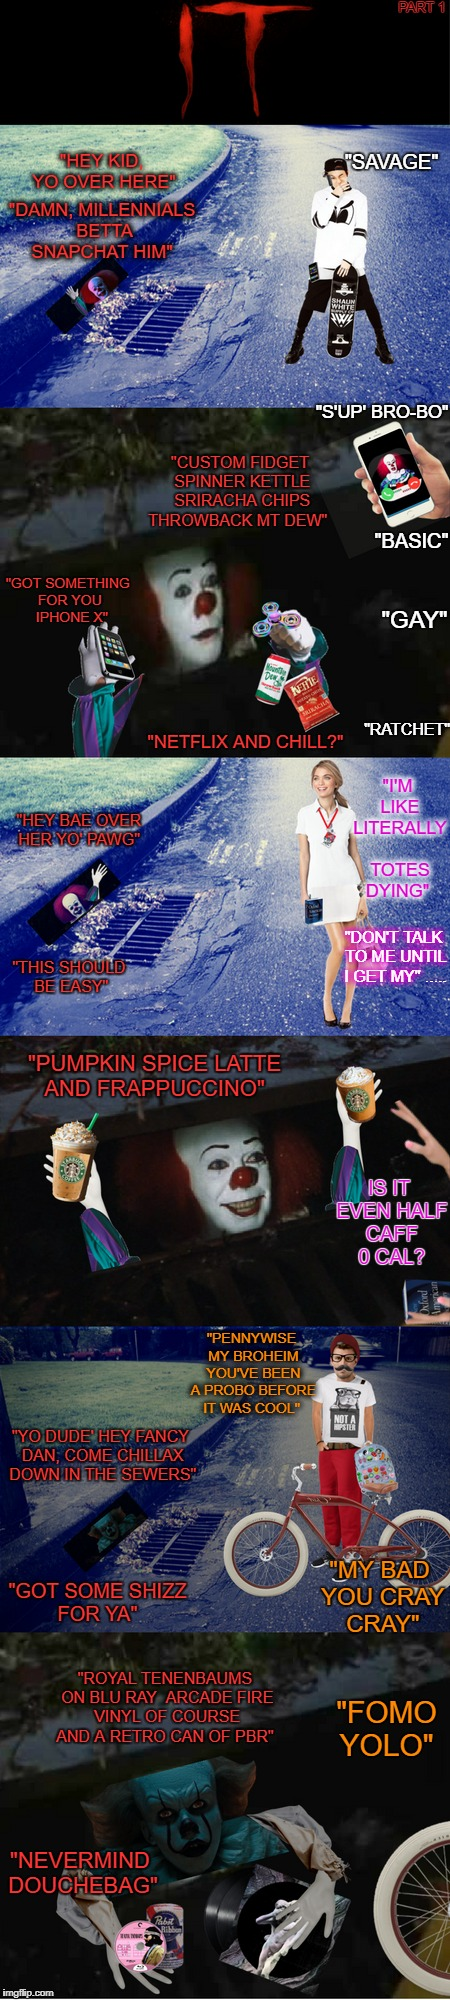 "Pennywise Stumbleupon Urban Dictionary. Float down in the sewers 2017.  | PART 1 ""NEVERMIND DOUCHEBAG"" ""HEY KID, YO OVER HERE"" ""S'UP' BRO-BO"" ""DAMN, MILLENNIALS BETTA SNAPCHAT HIM"" ""SAVAGE"" ""GOT SOMETHING FOR YOU   